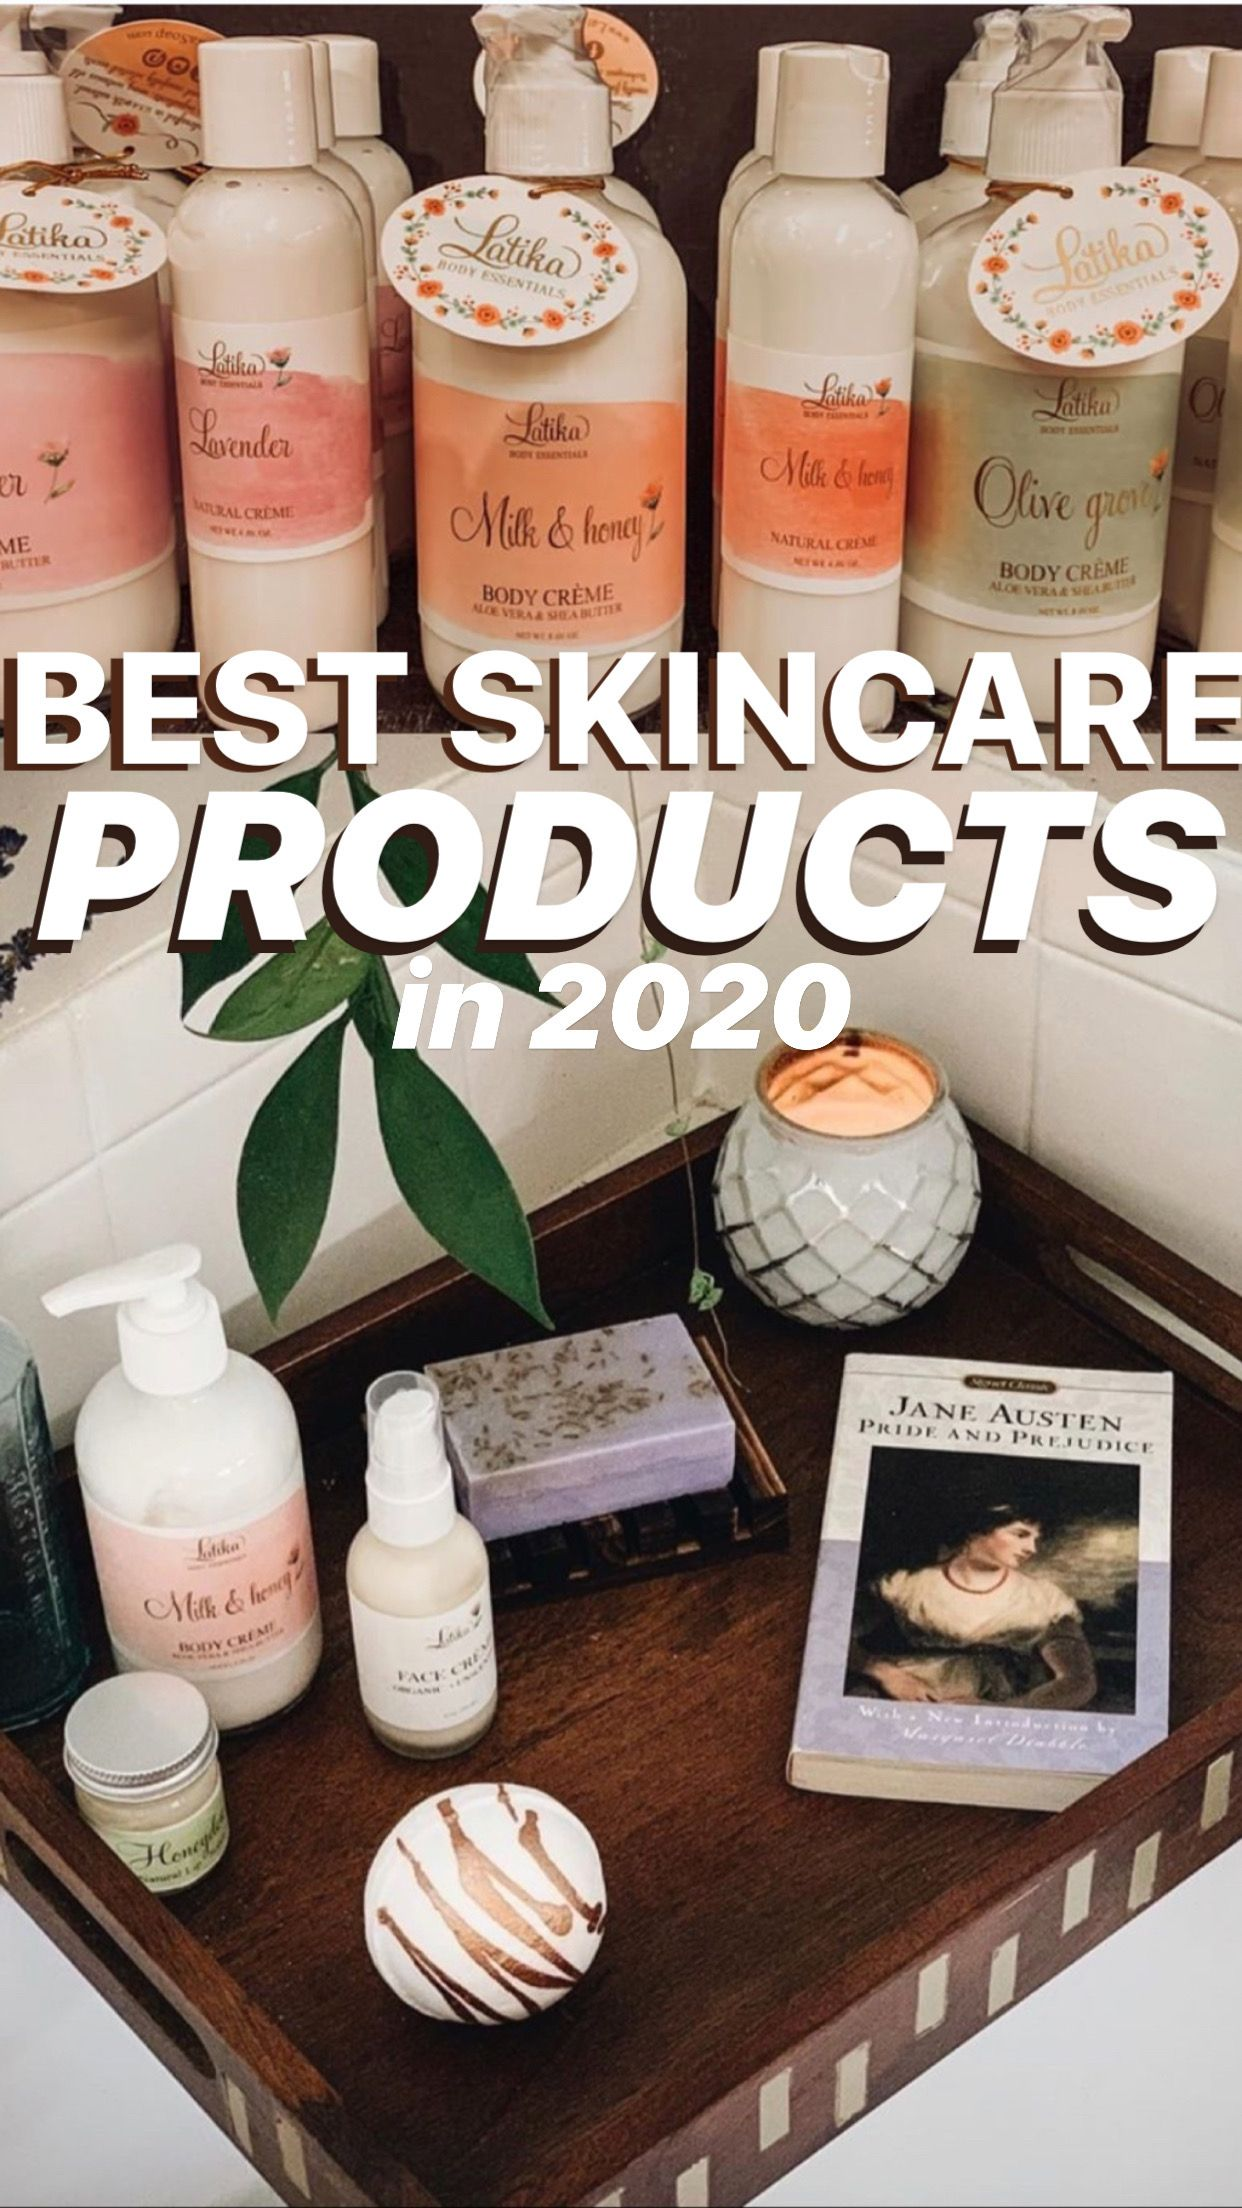 Best Skincare Products In 2020 In 2020 Best Skincare Products Bath And Body Care Perfume Recipes